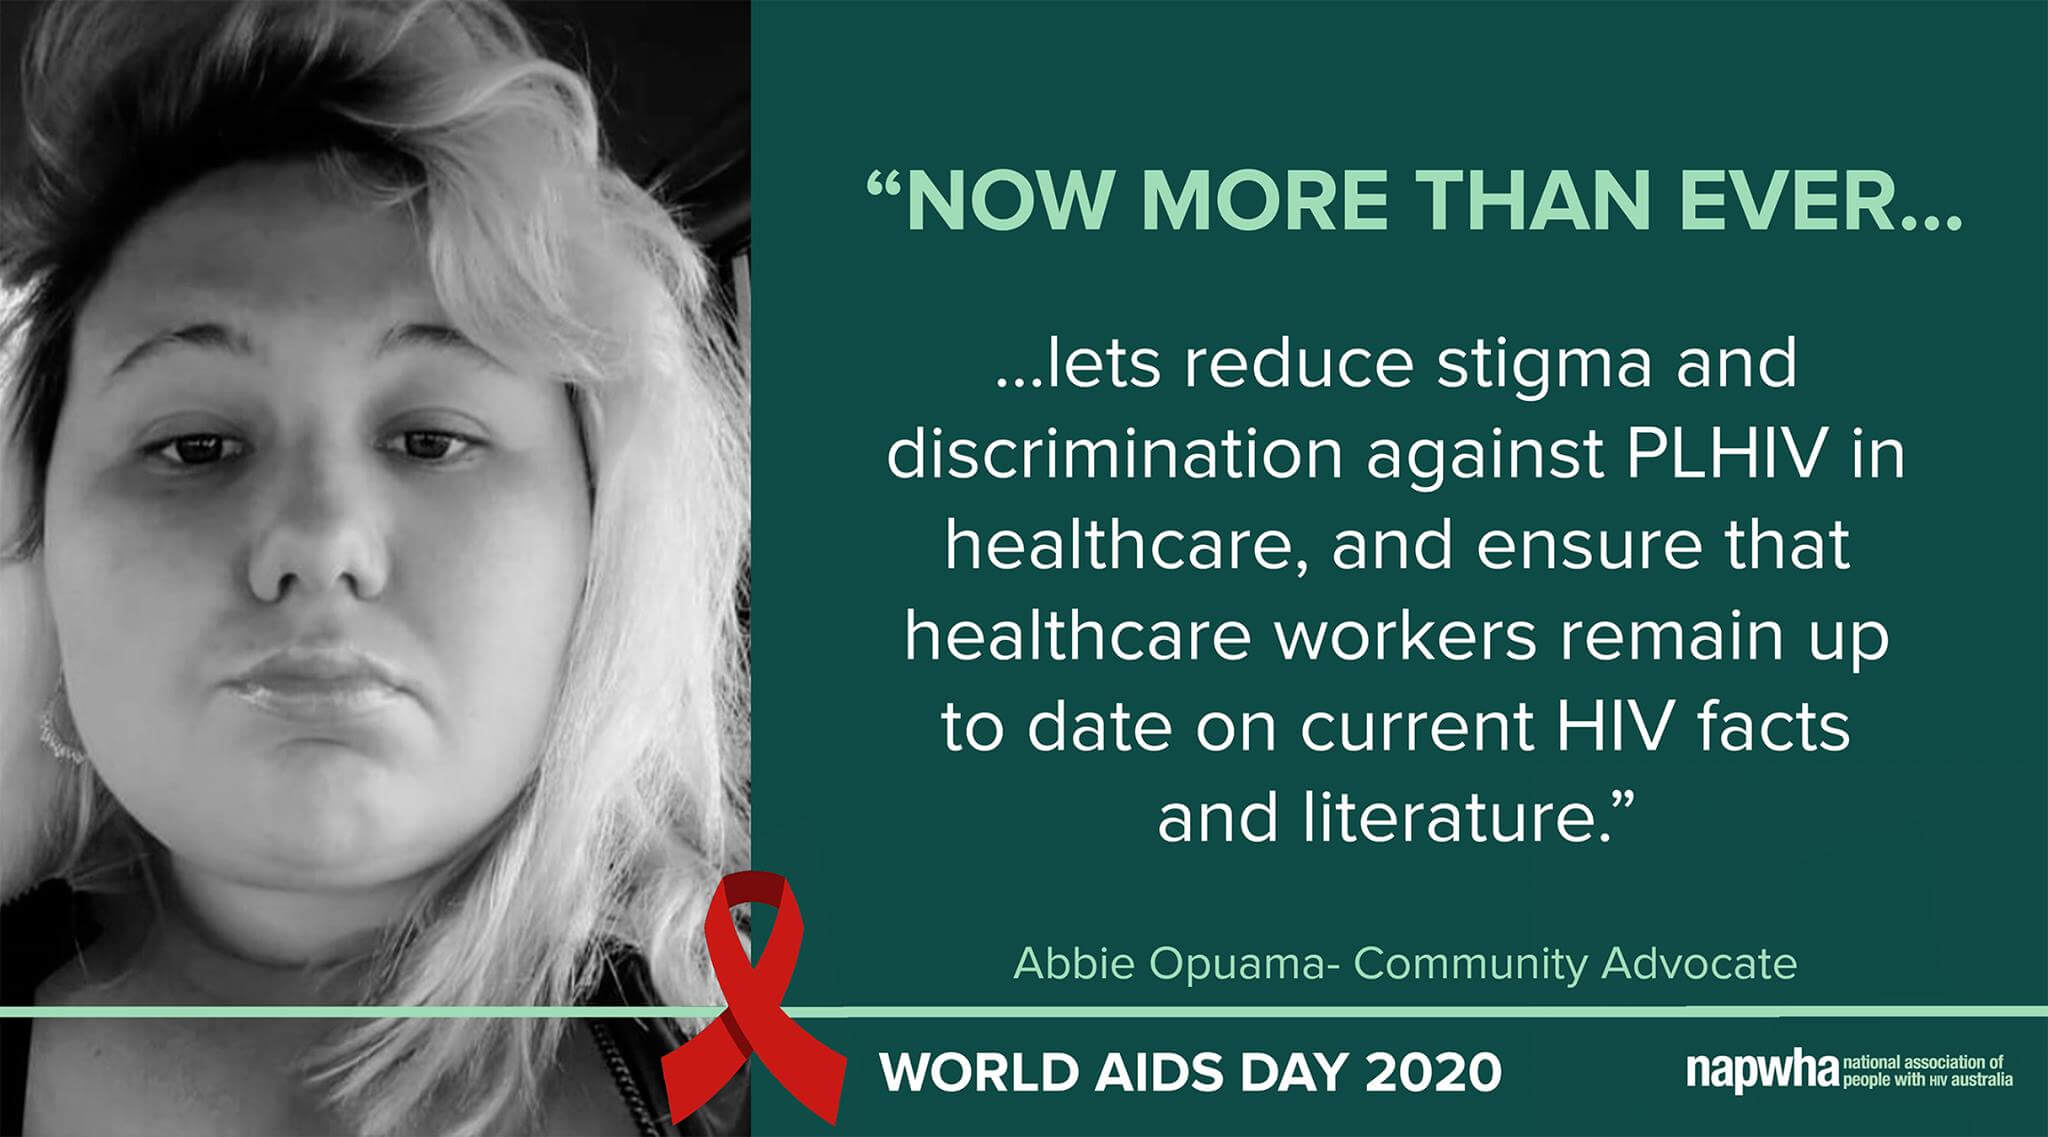 Abbie Opuama, Community Advocate provides a World AIDS Day 2020 message